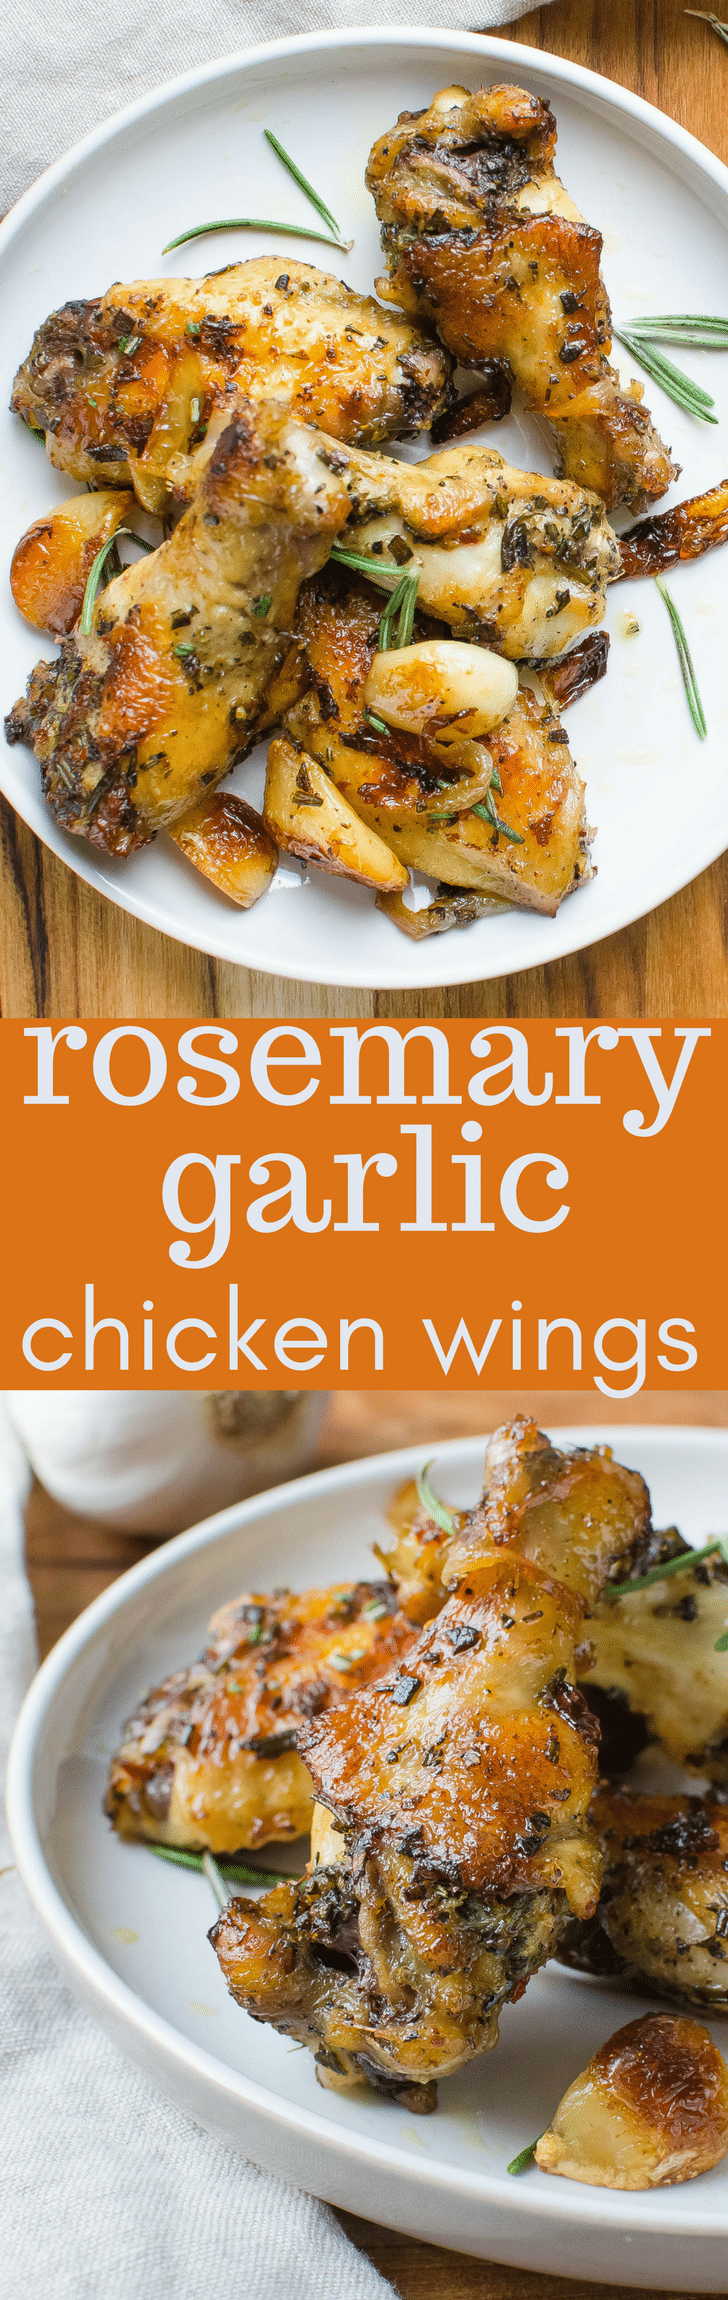 The best wing recipe! Rosemary Garlic Chicken Wings have tons of flavor for your game day snacking! Use a cast iron skillet to get a good crust and sear! #wings #chickenwings #garlic #rosemary #chicken #paleo #onions #gameday #superbowl #superbowlsnacks #gamedaysnacks #tailgating #castironskillet #chickenwingrecipe #wingrecipe #easychickenwingrecipe #snacks #savorysnacks #appetizers #horsdoeuvres